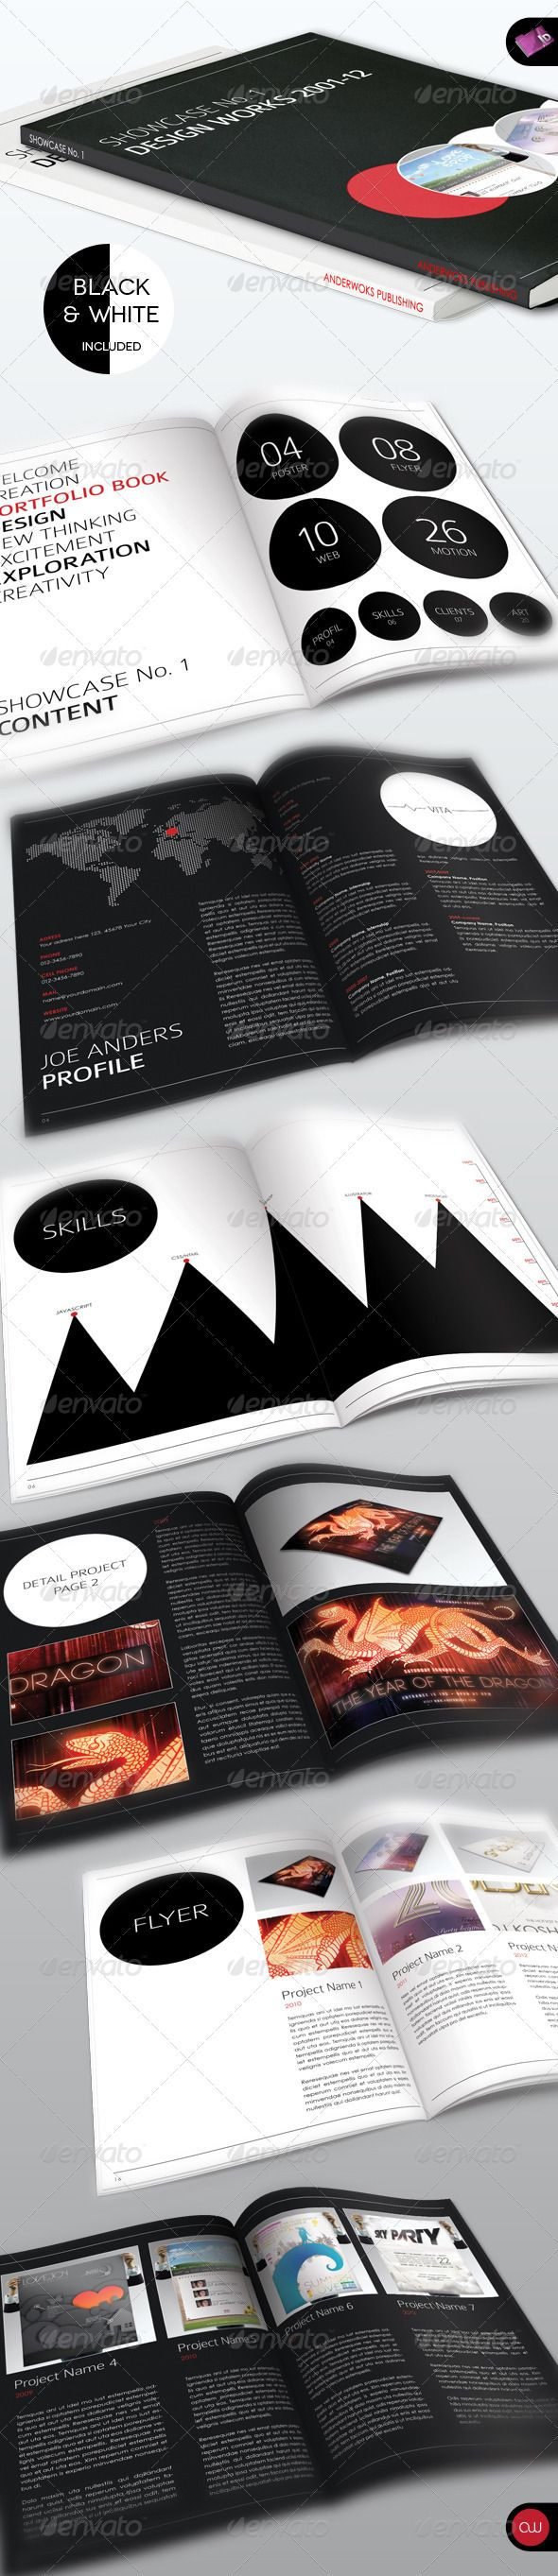 12 best Templates/Ideas images on Pinterest | Indesign templates ...